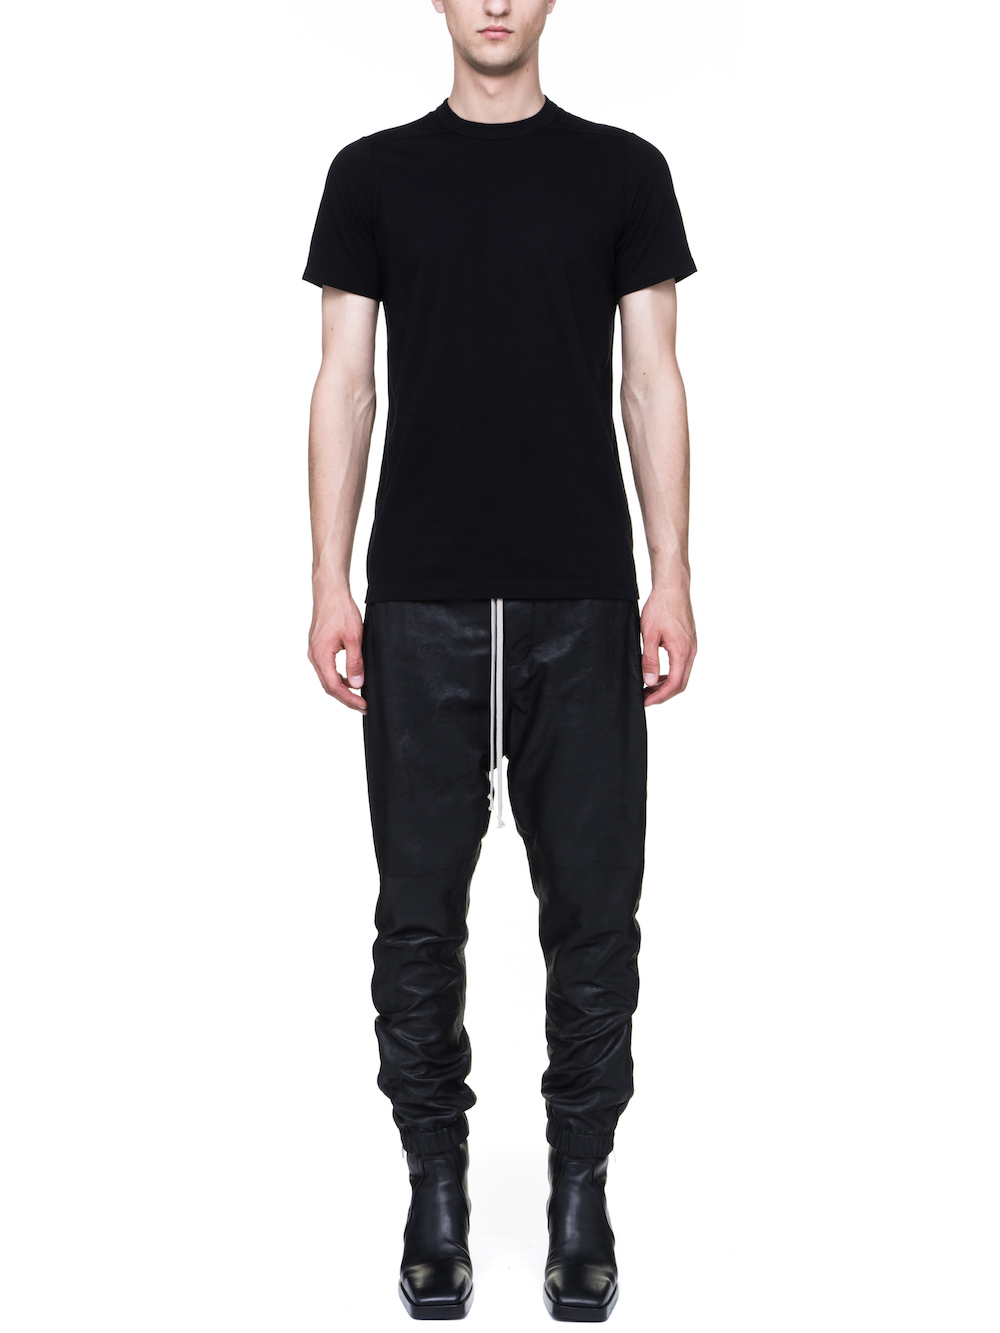 RICK OWENS LEVEL TEE IN BLACK MEDIUMWEIGHT COTTON JERSEY